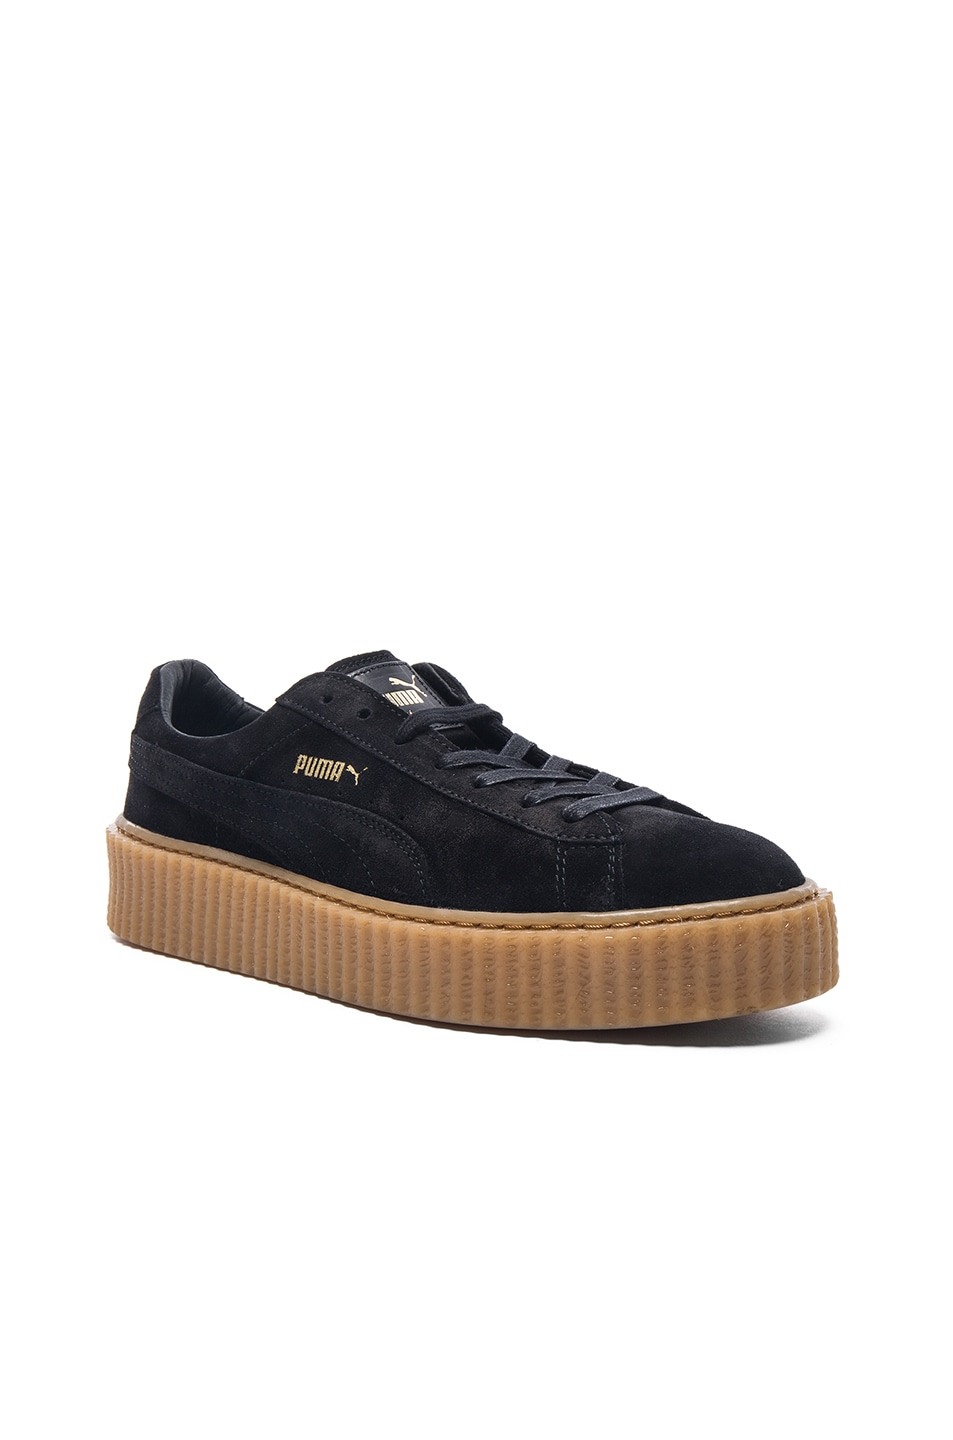 Image 1 of Puma by Rihanna Creepers in Black